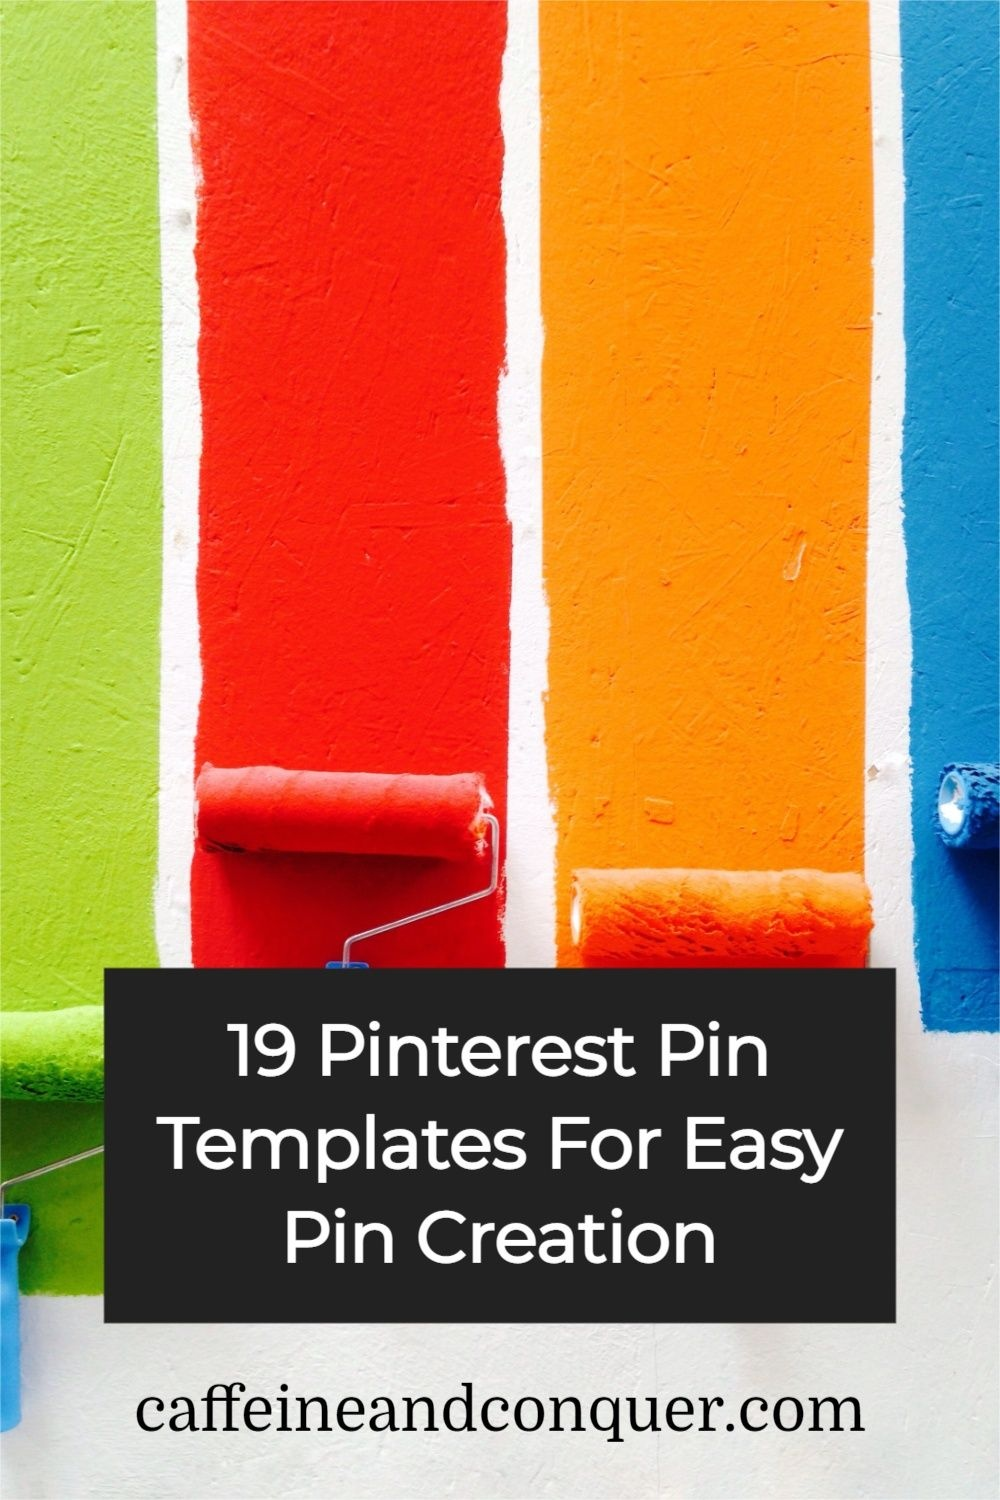 Marketing Pinterest Pin image created by Sarah Fournier (Caffeine and Conquer Pinterest Marketing) using a Tailwind Create design template in 2021.